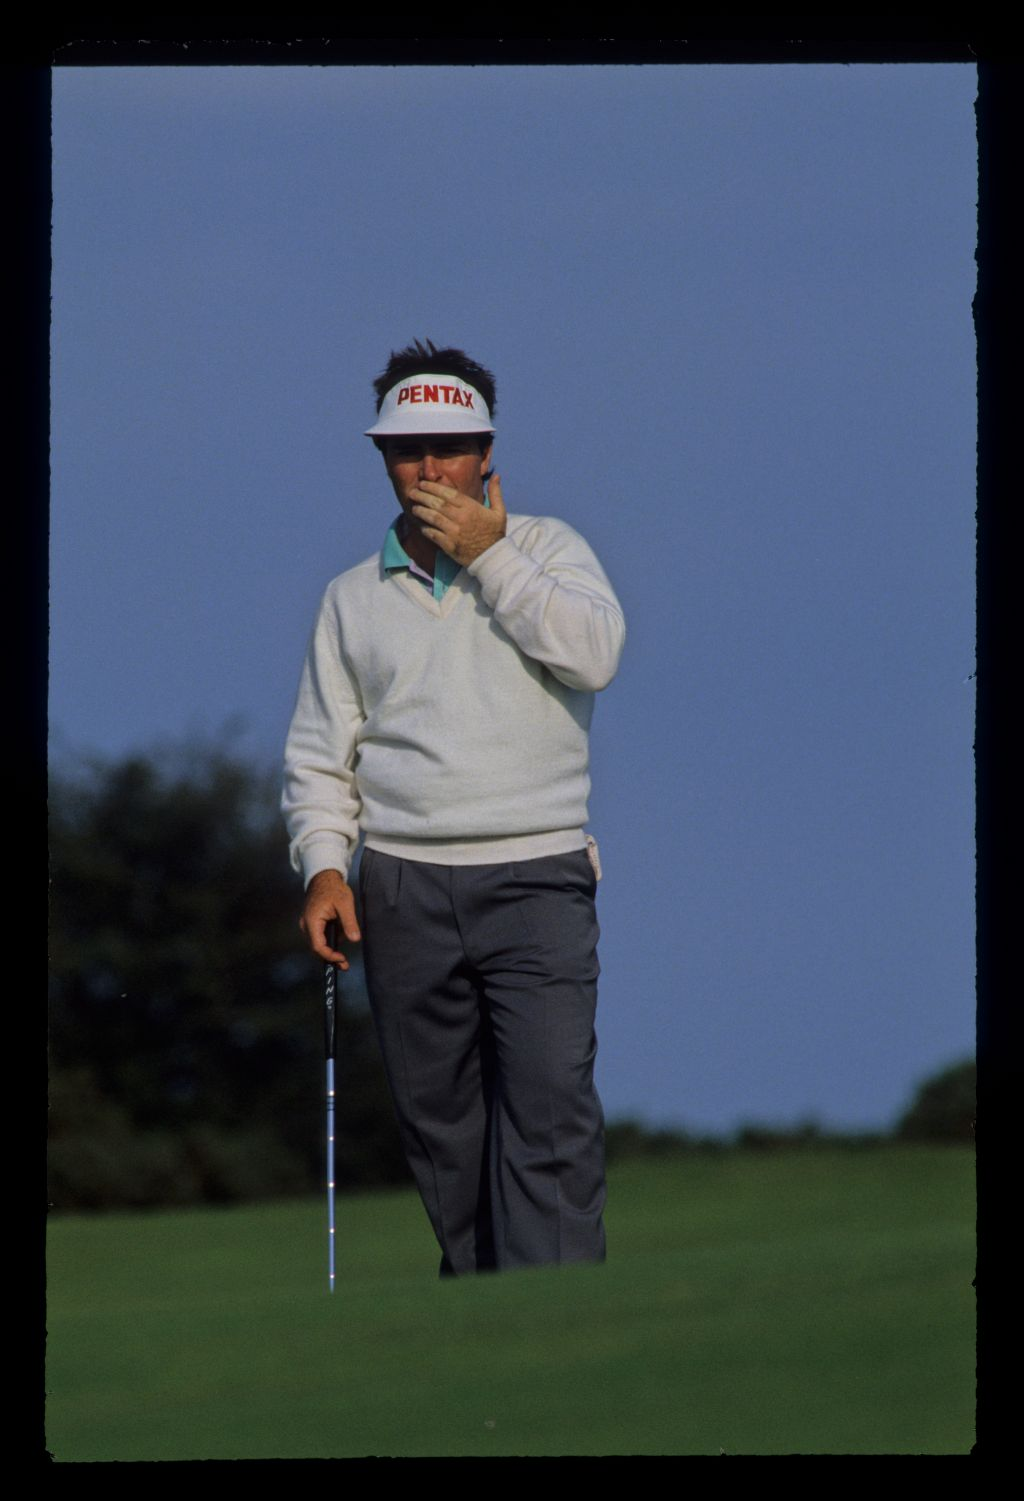 Craig Parry reacting to a putt during the 1990 Open Championship